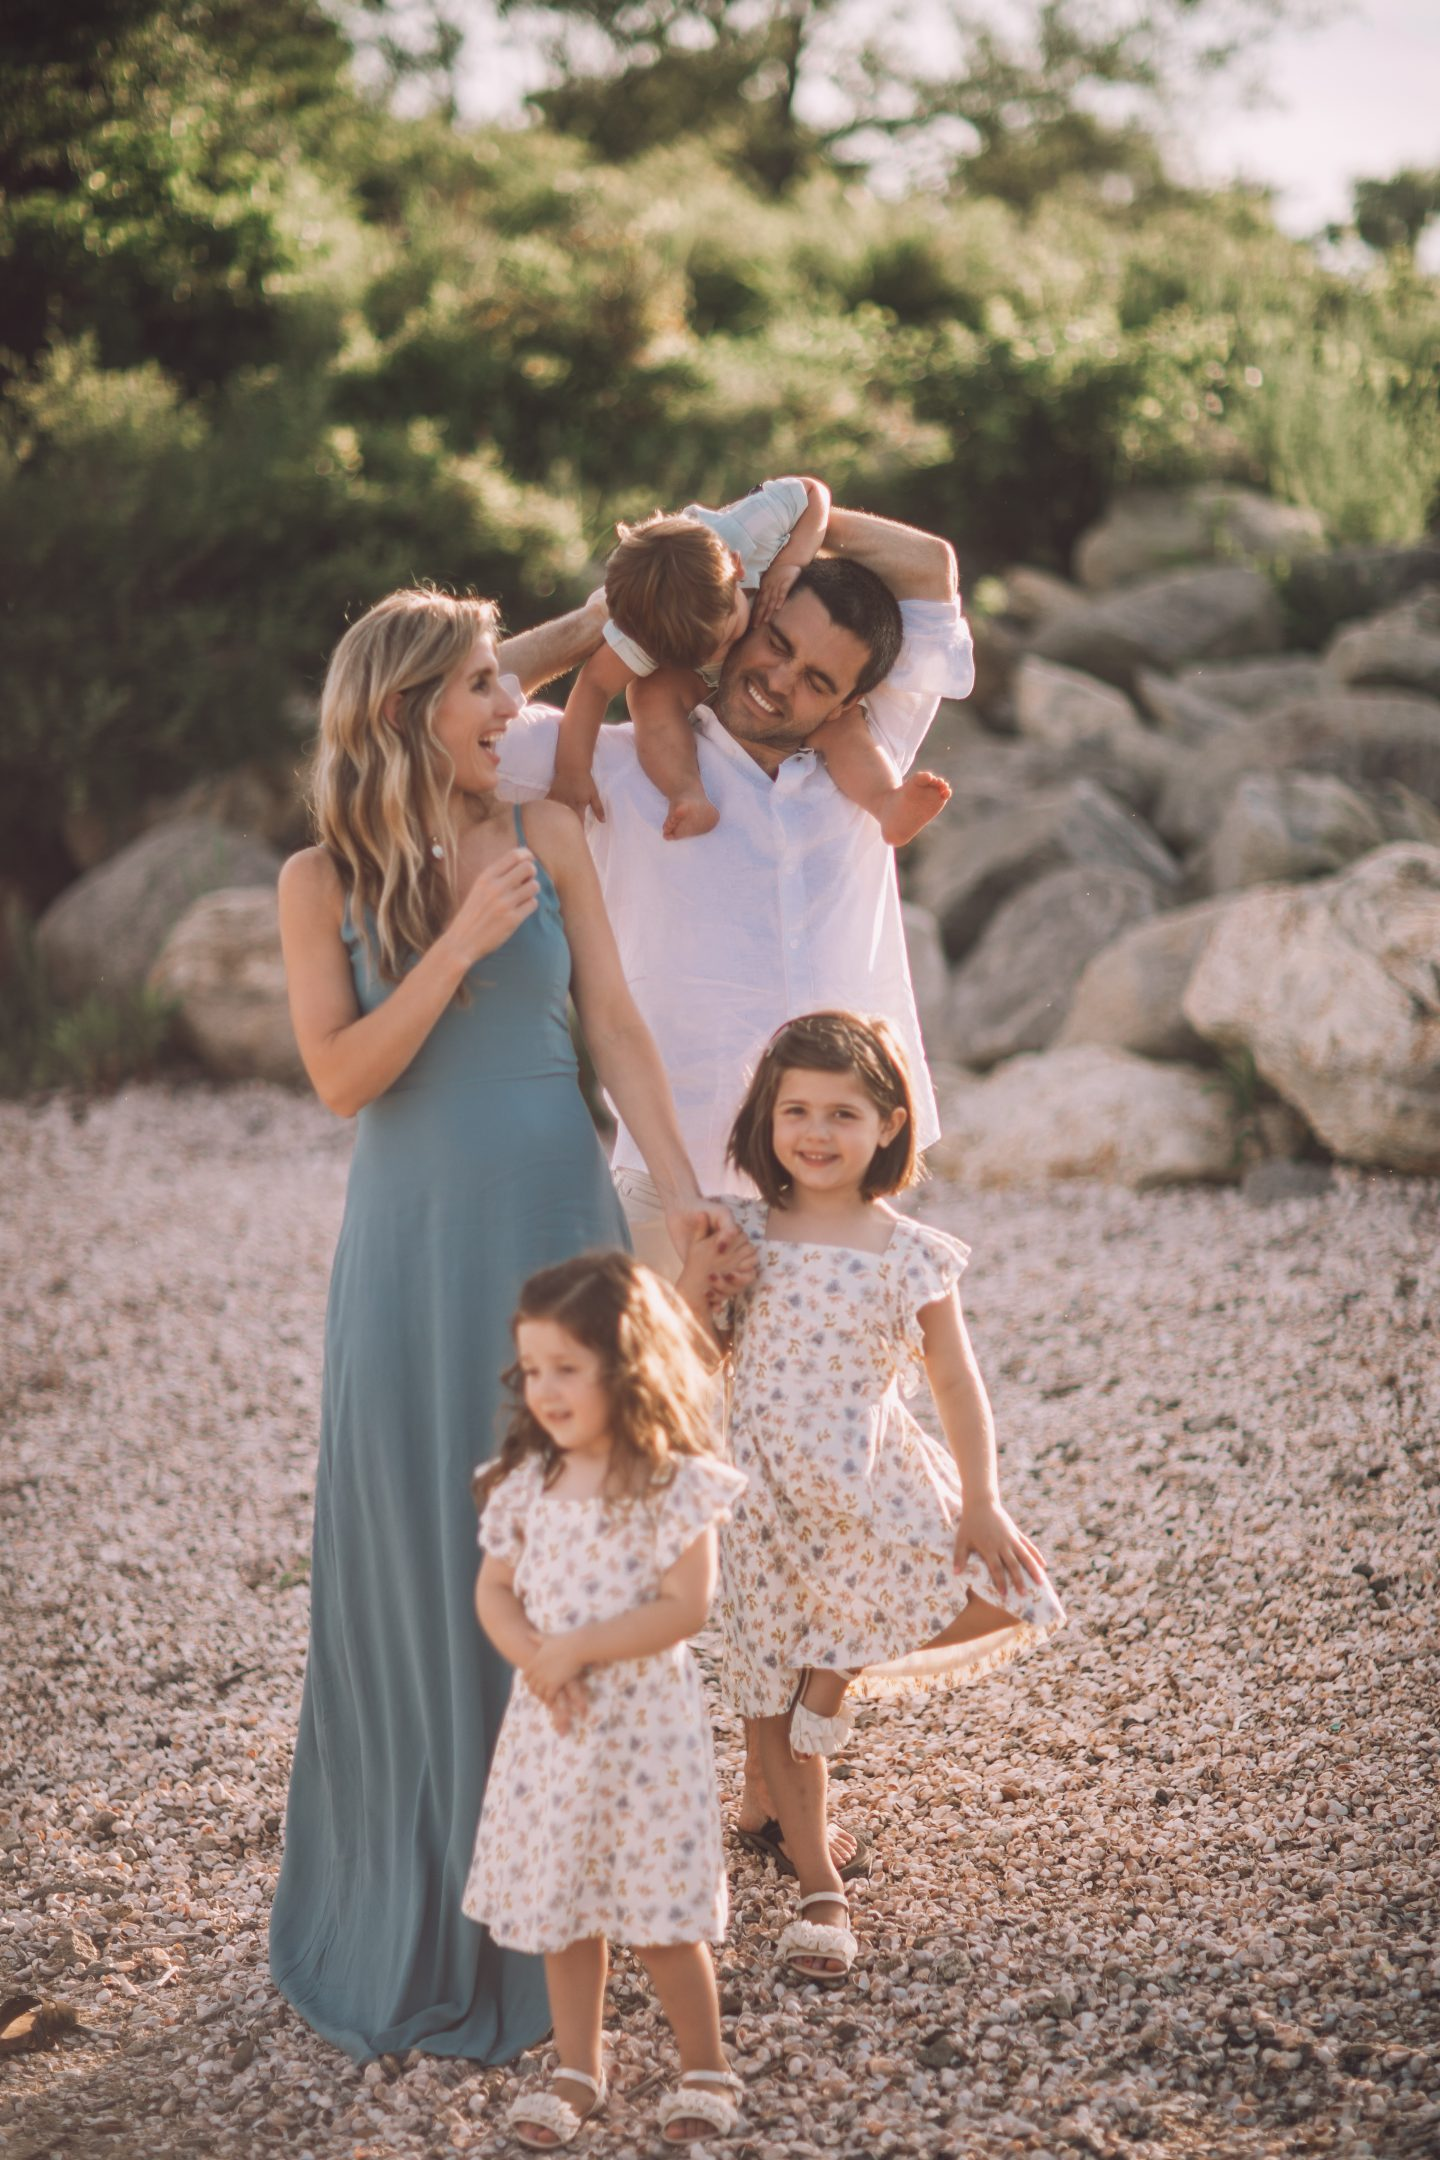 Family Outfit Inspiration for Summer Photos - Lynzy & Co.